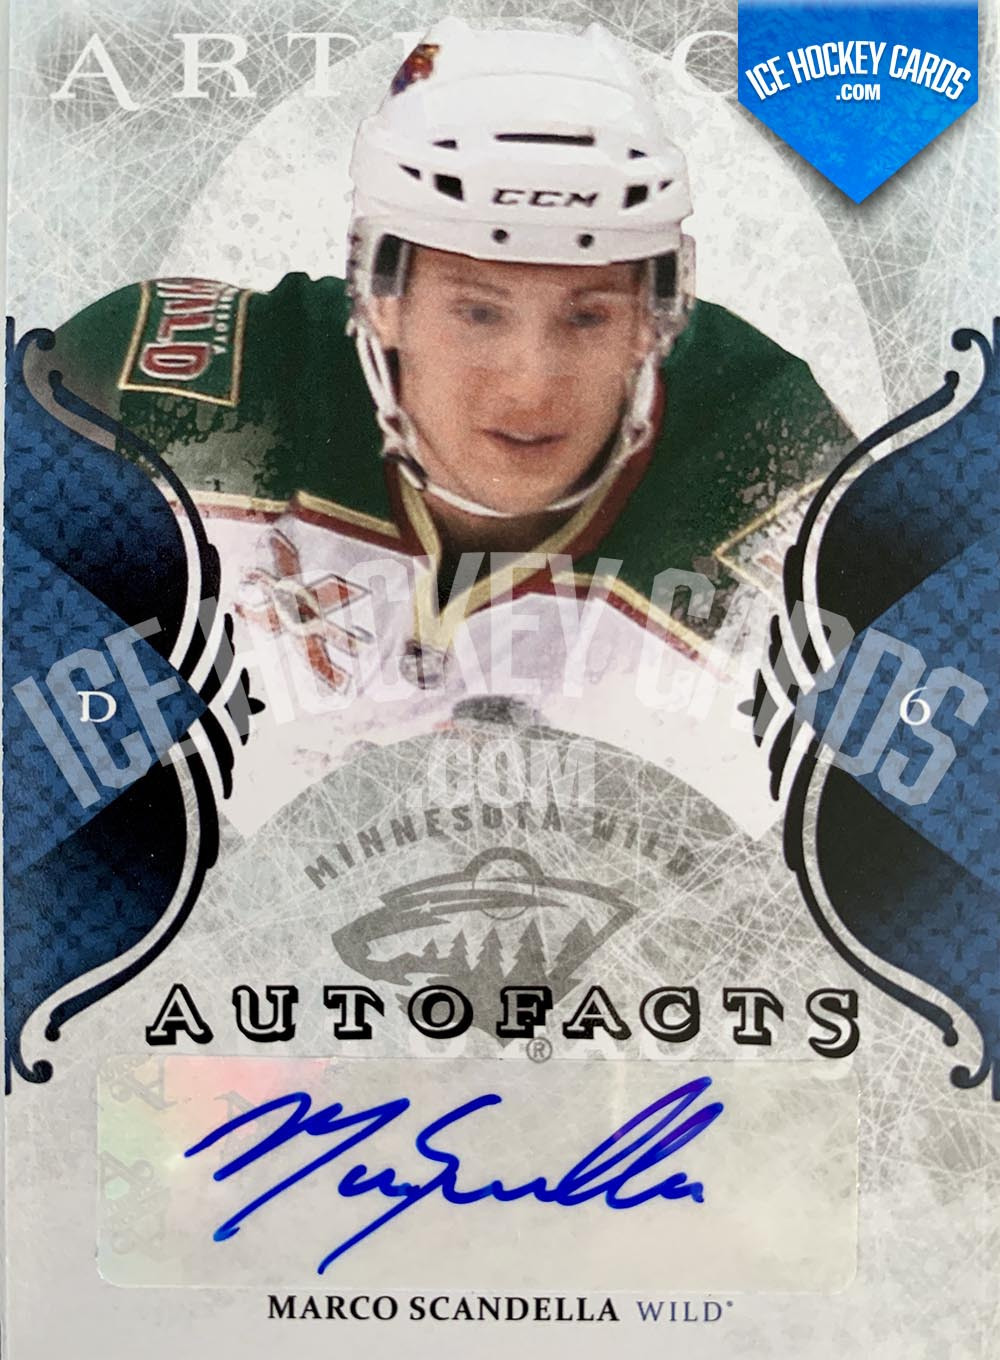 Upper Deck - Artifacts 2011-12 - Marco Scandella Autofacts Autograph